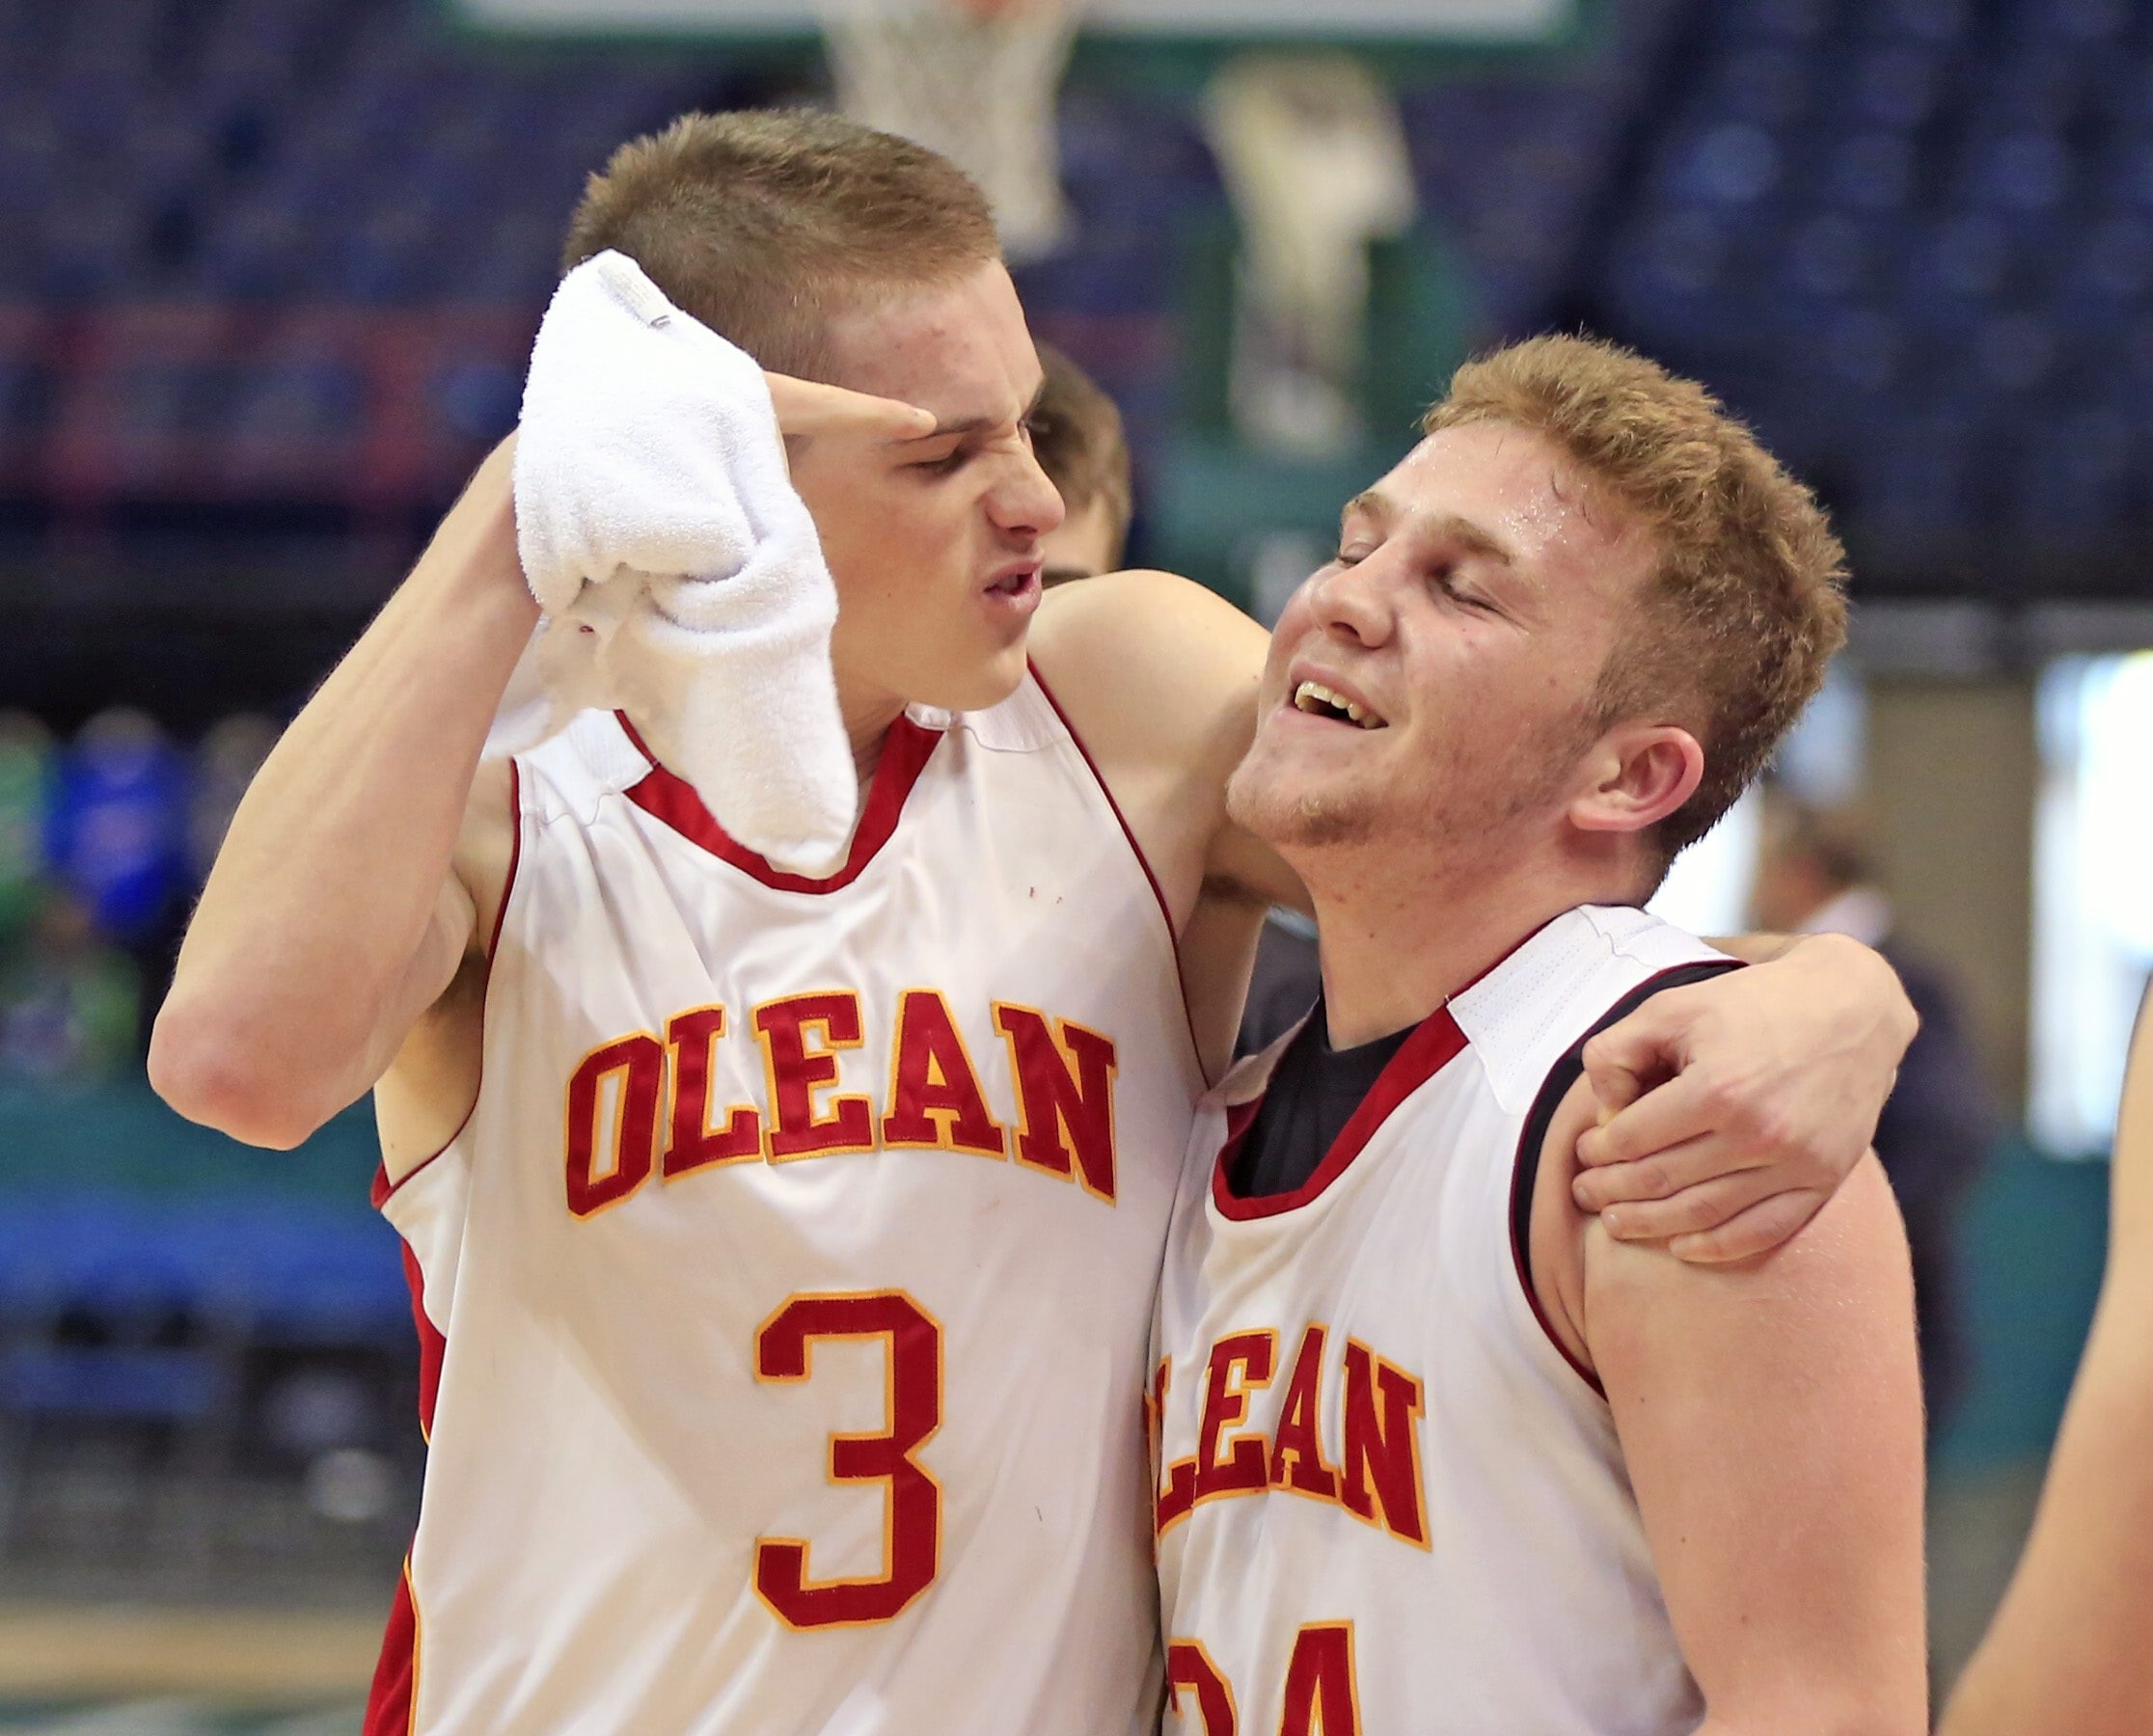 Olean's Derek Schmidt, left, celebrates with Jacob Cavana, who made two free throws with less than a second left.